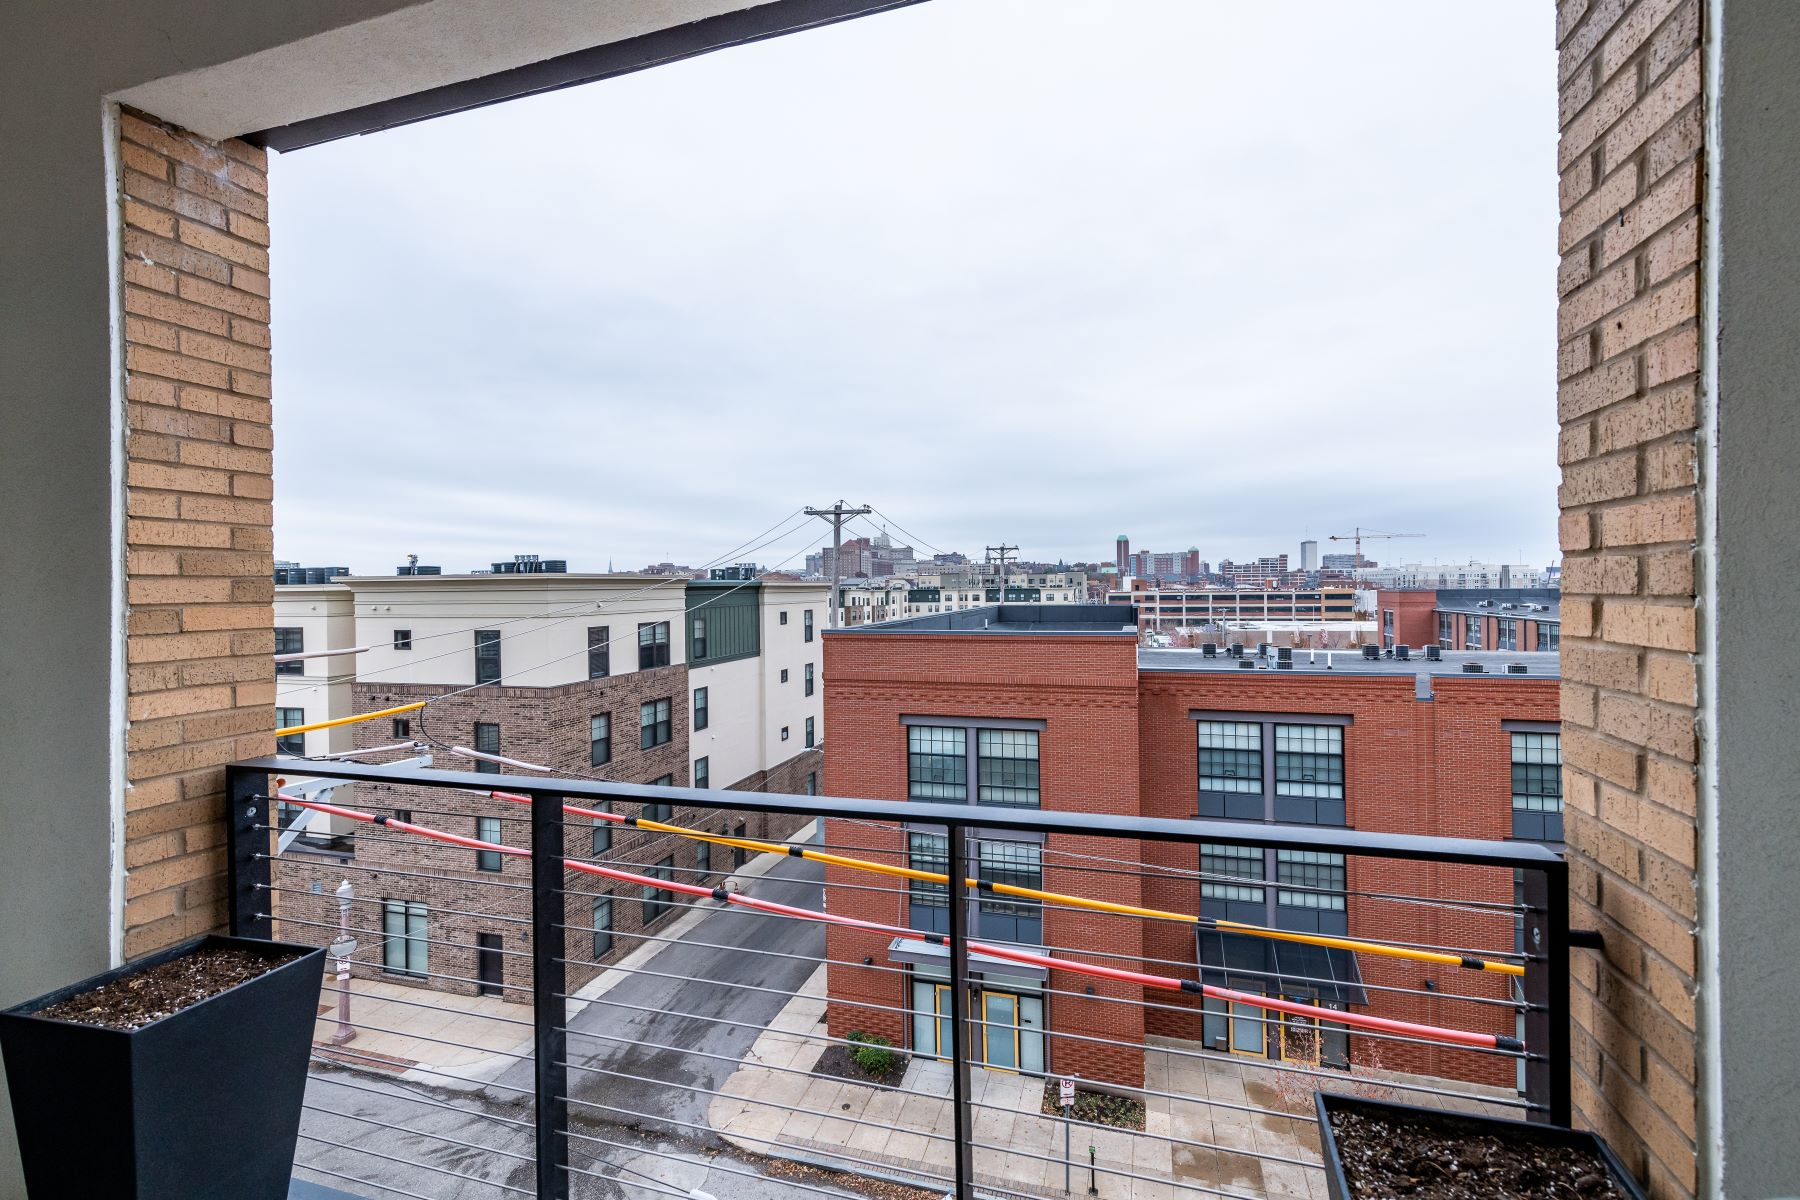 Additional photo for property listing at 4101 Laclede Condo 4101 Laclede Avenue #402 St. Louis, Missouri 63108 United States